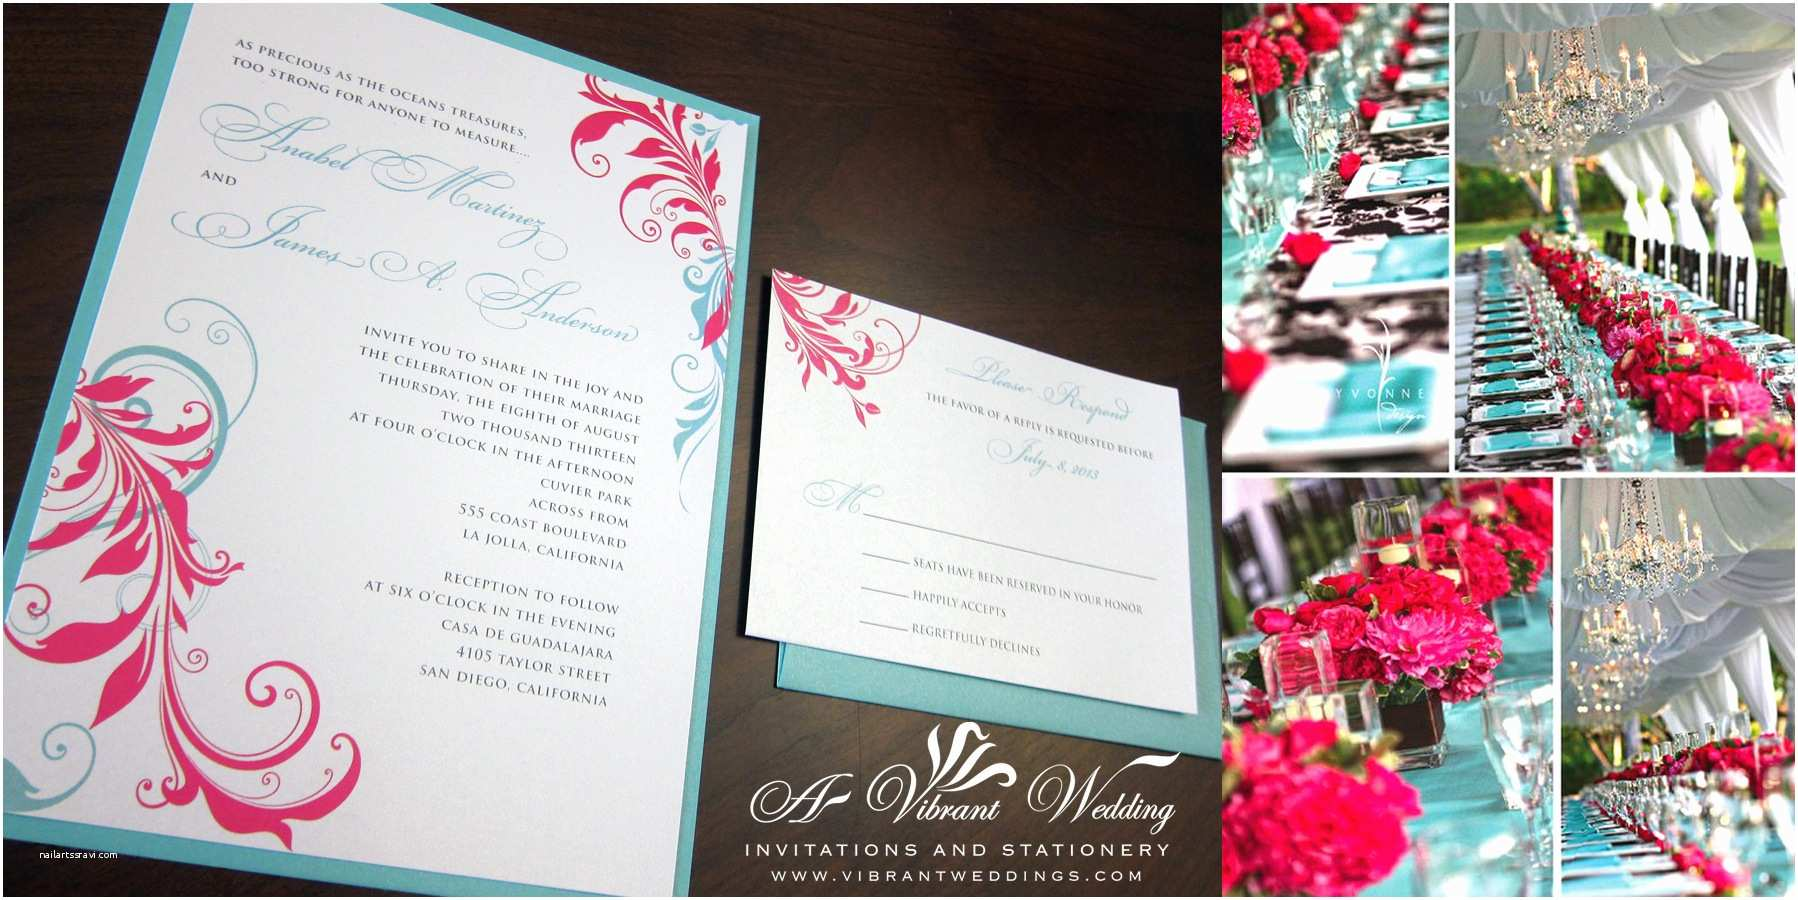 Turquoise and Hot Pink Wedding Invitations June 6 2013 – A Vibrant Wedding